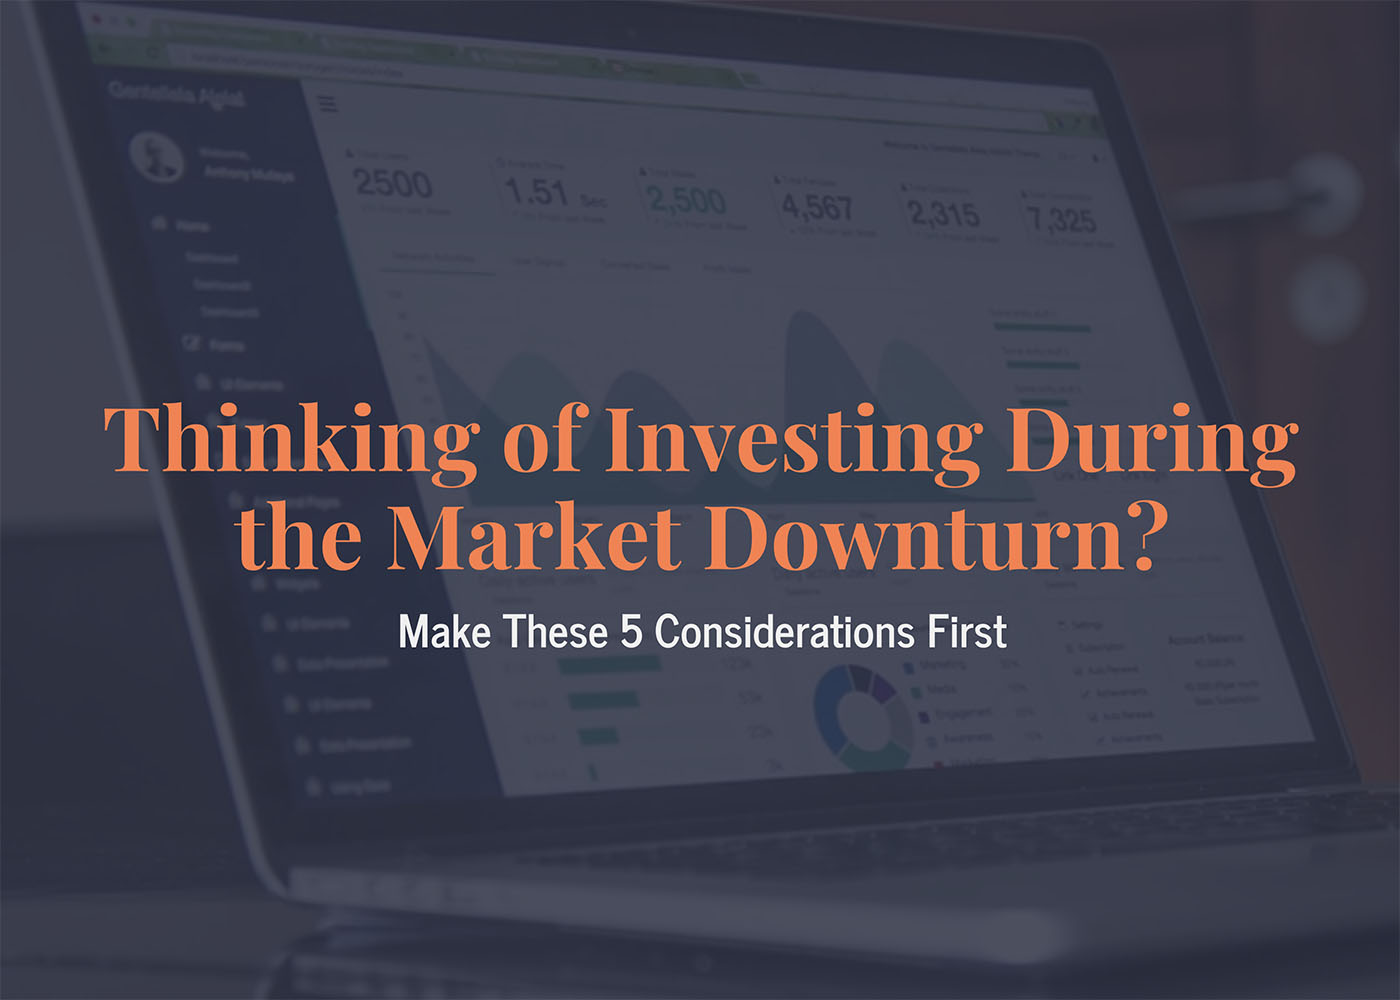 Thinking of Investing During the Market Downturn? Make These 5 Considerations First Thumbnail